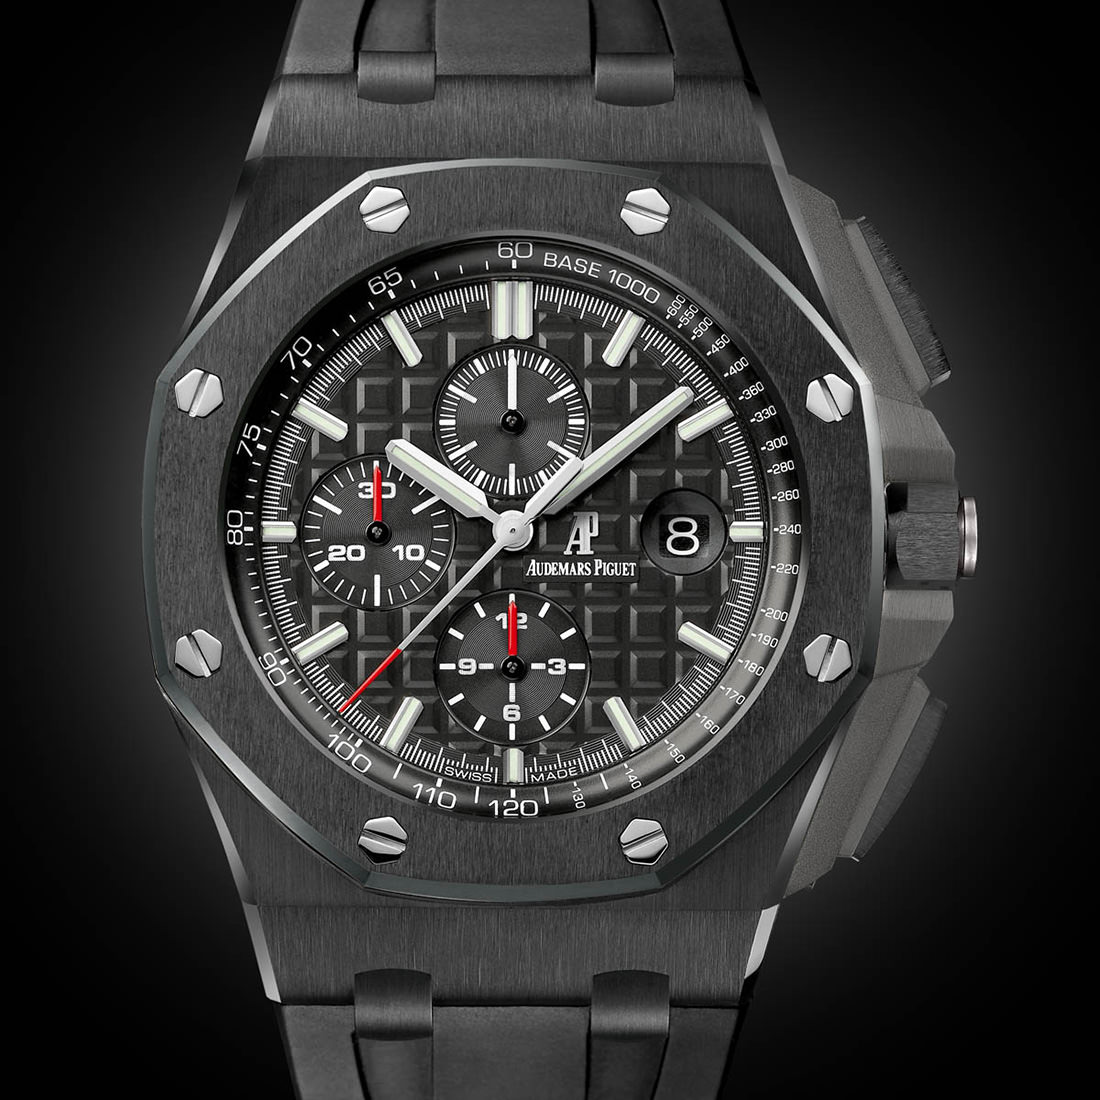 Montre Royal Oak Offshore Chronograph Audemars Piguet